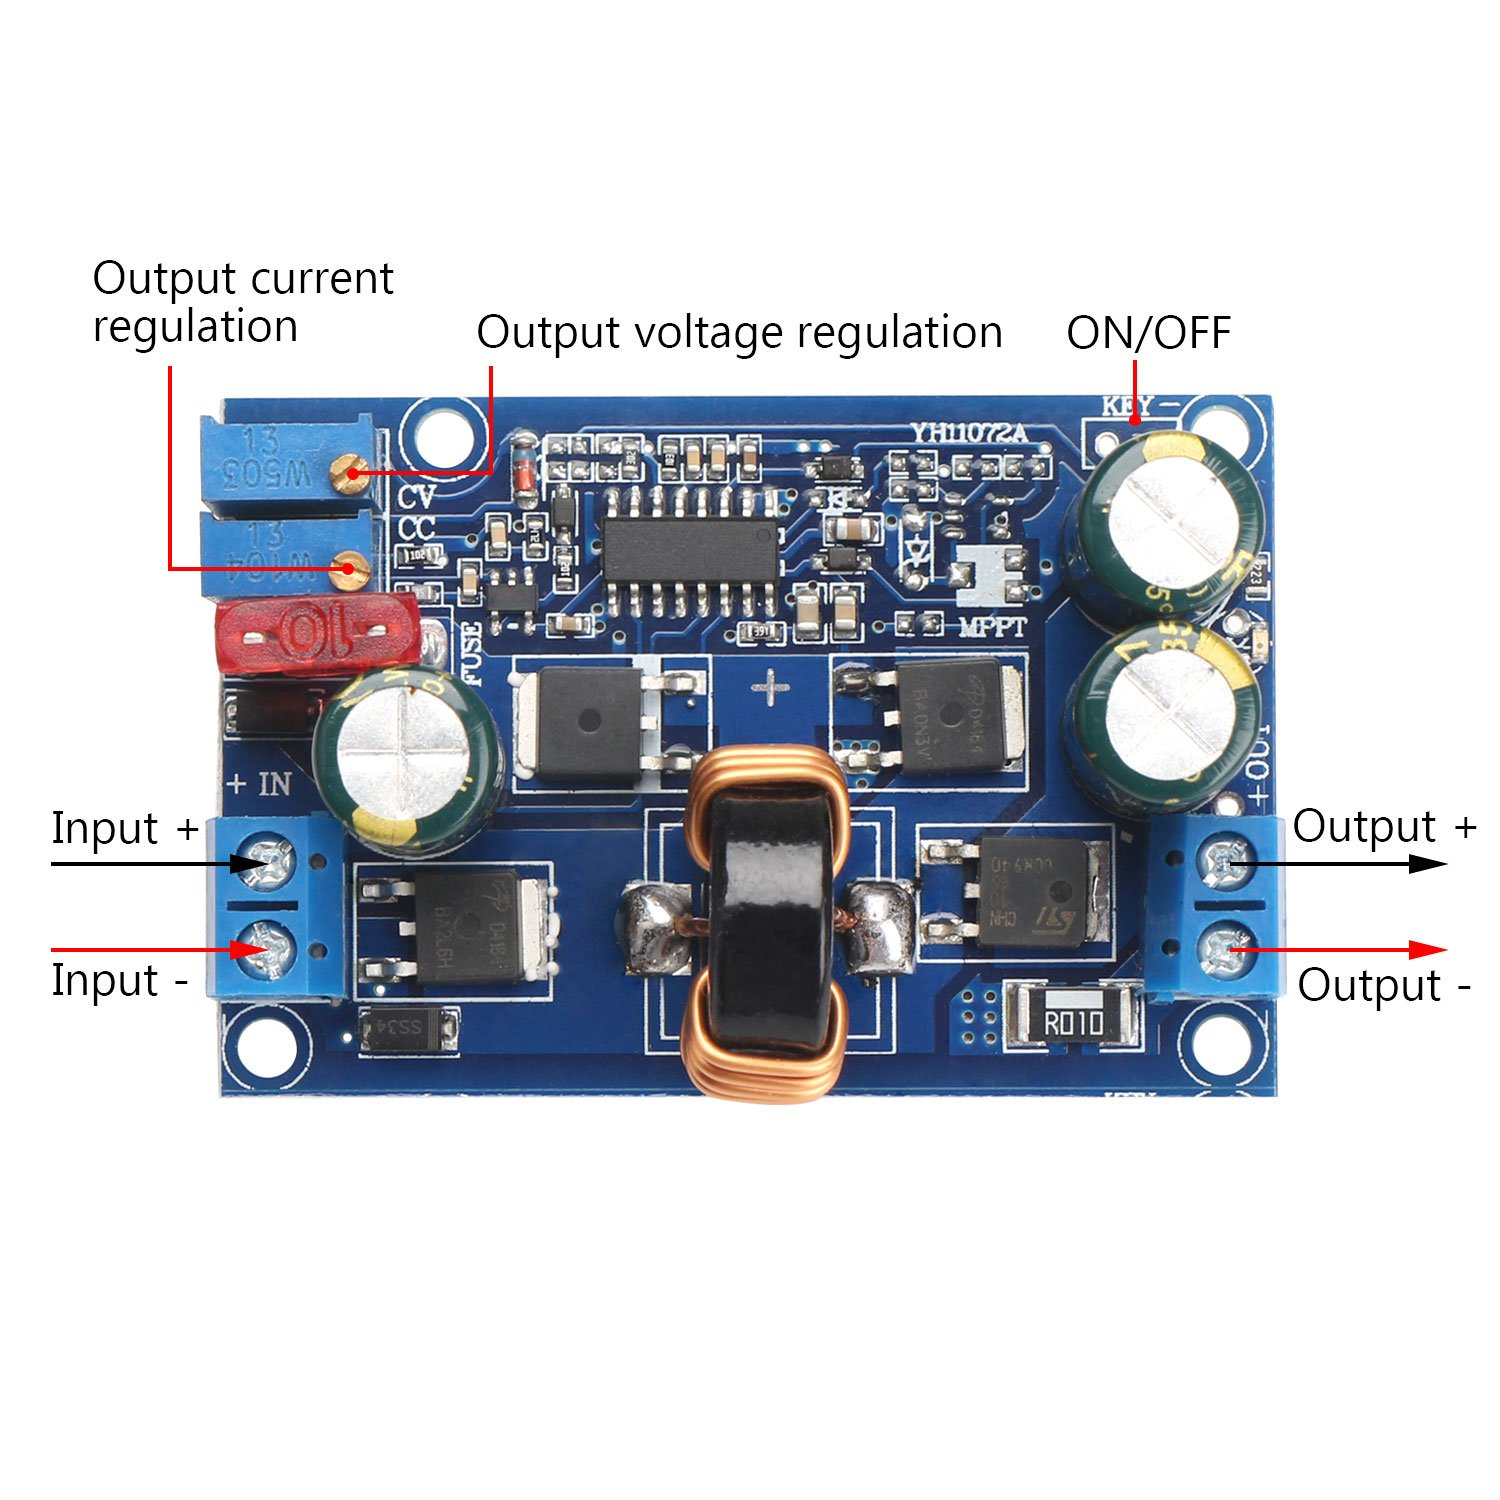 Drok Dc Automatic Boost Buck Converter Module 60w Electronics Technology 5vdc To 12vdc Lt1070 Circuit Constant Voltage Current Car Regulator Dc5 32v 125 20v Industrial Scientific